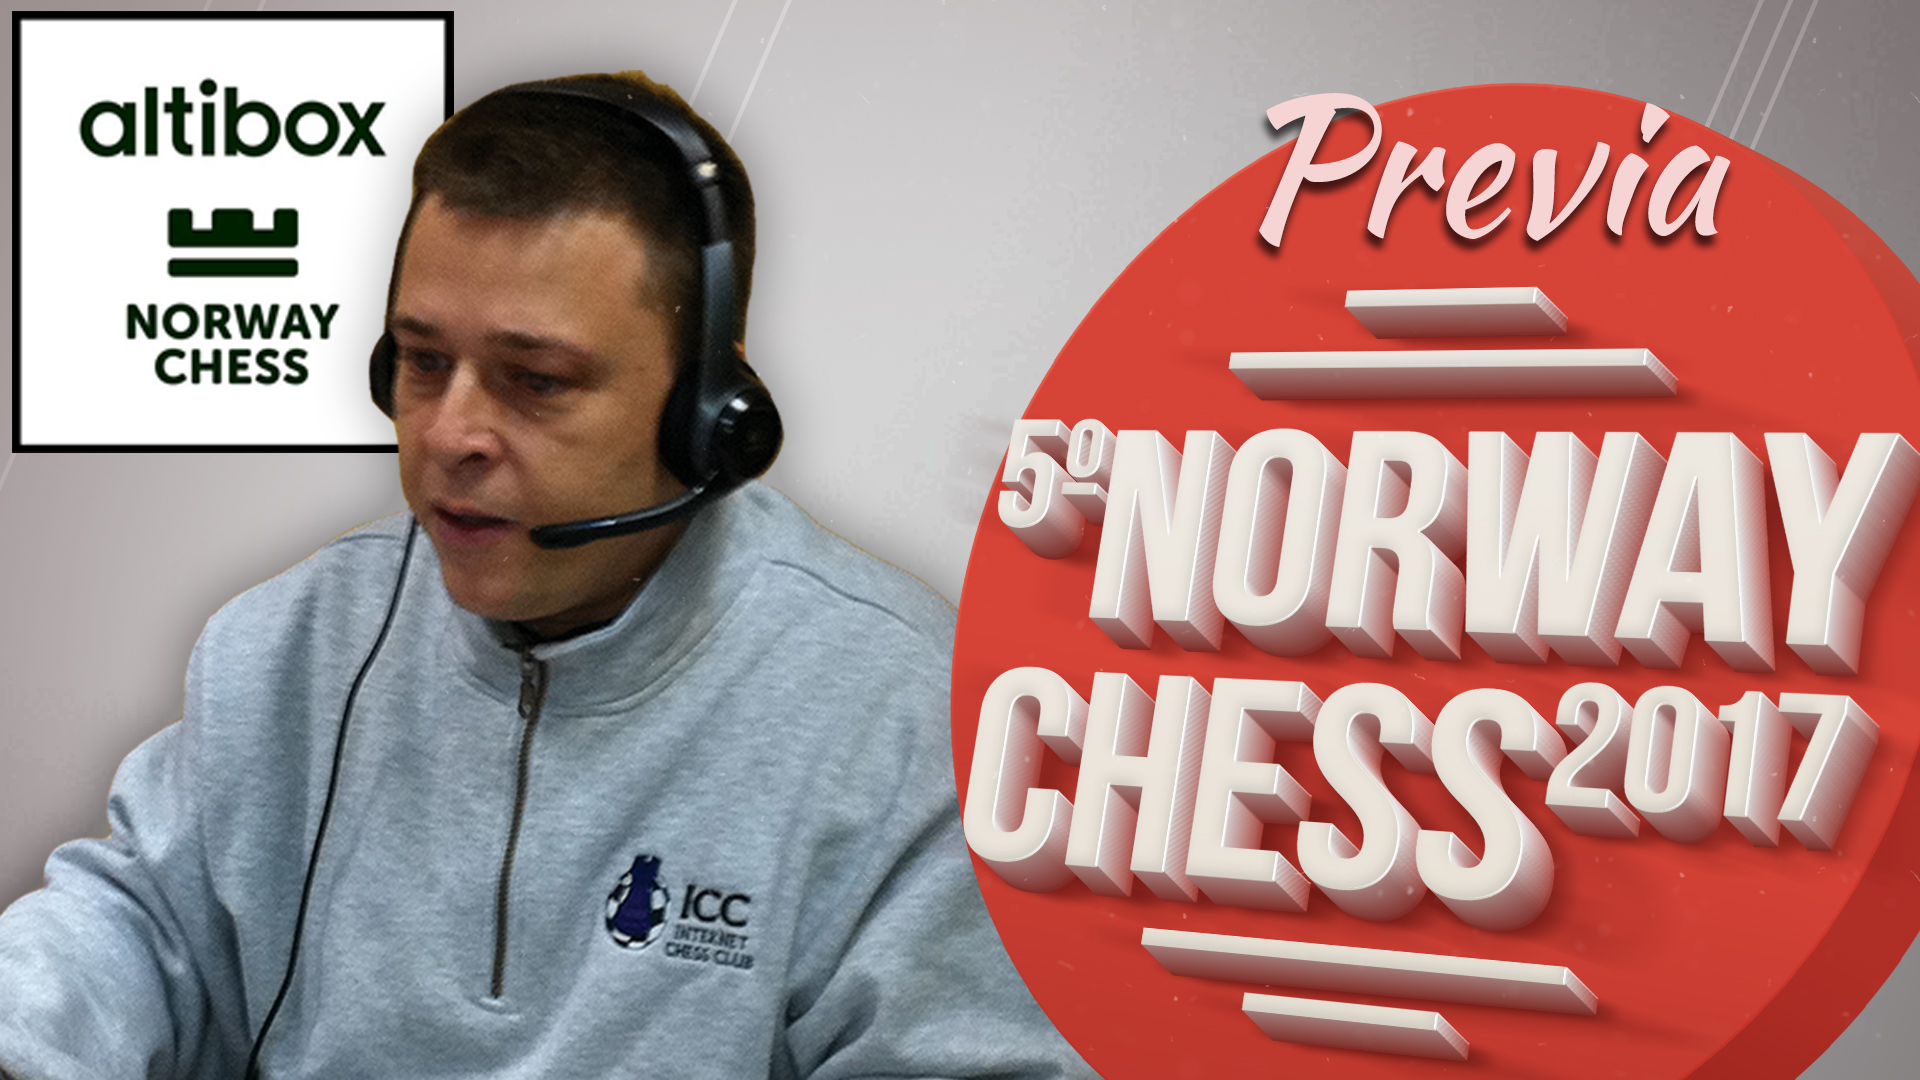 Norway Chess 2017 (previa) Michael Rahal